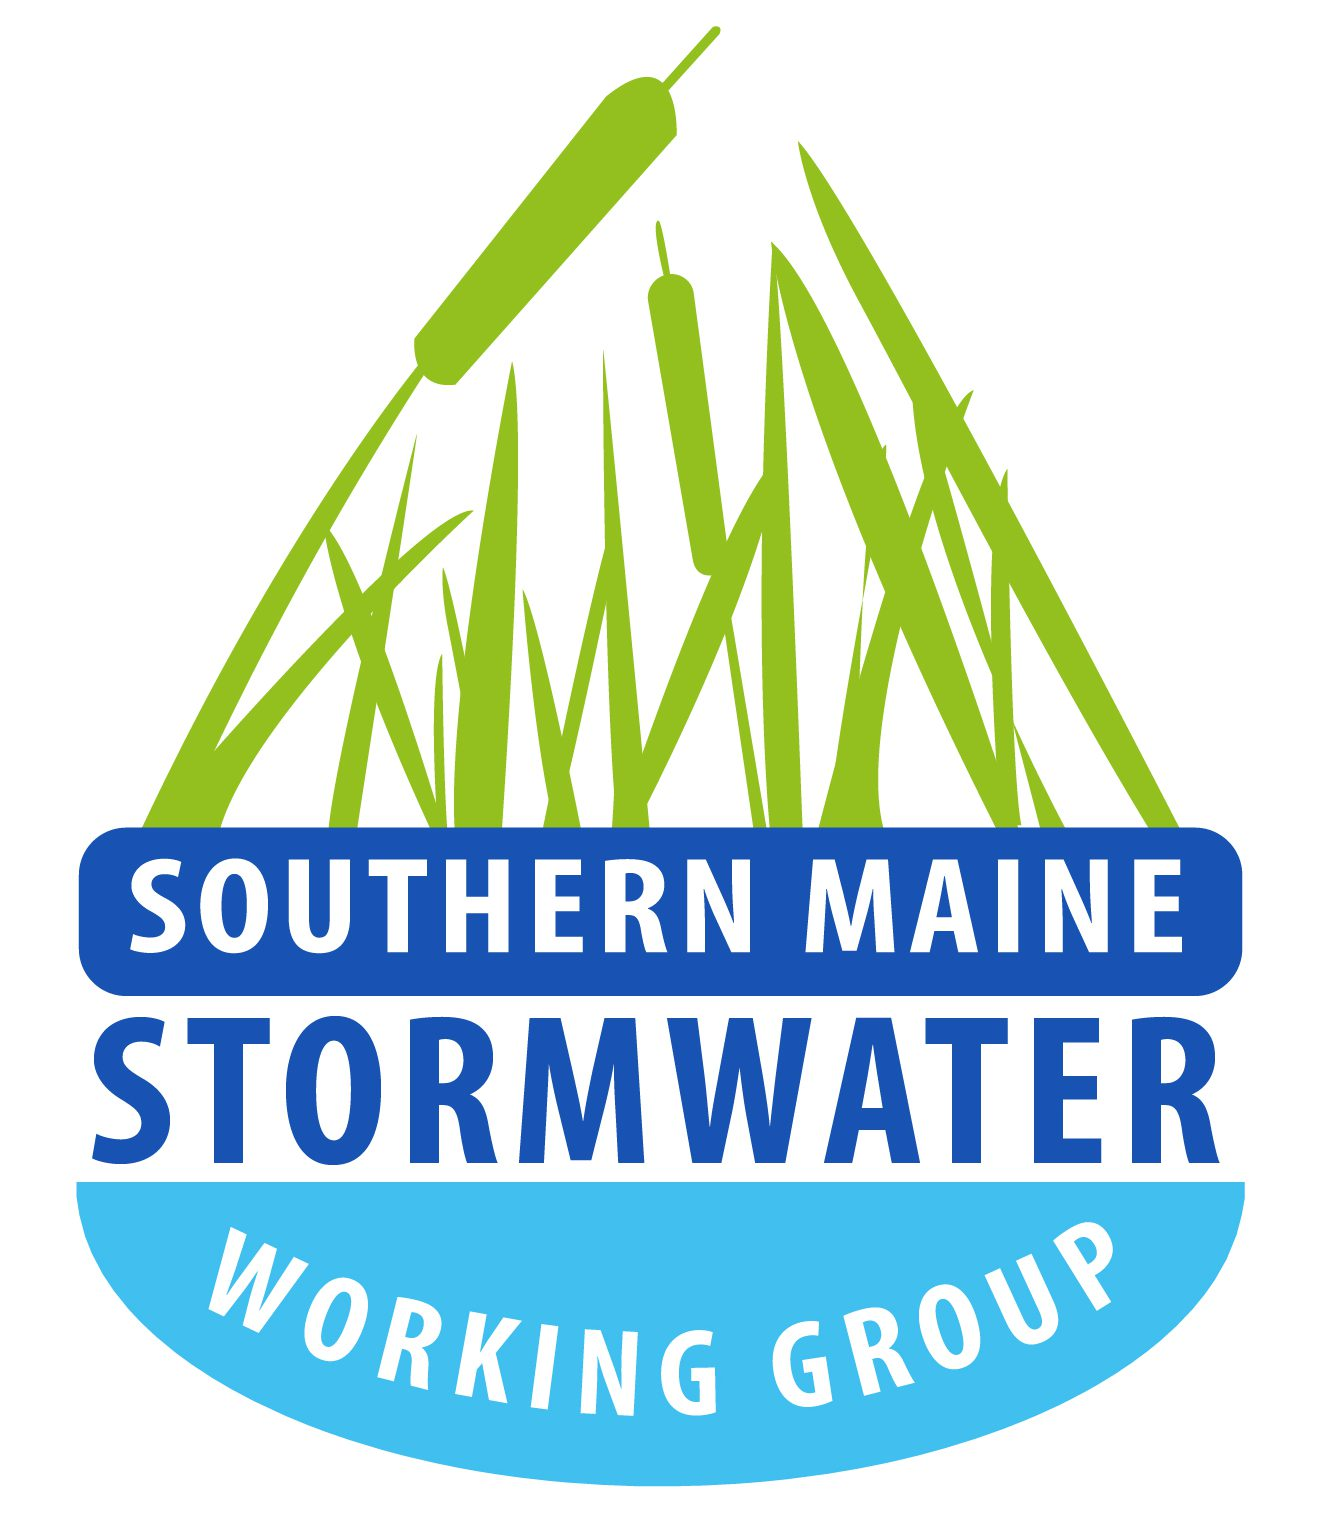 Keeping Southern Maine Water Clean